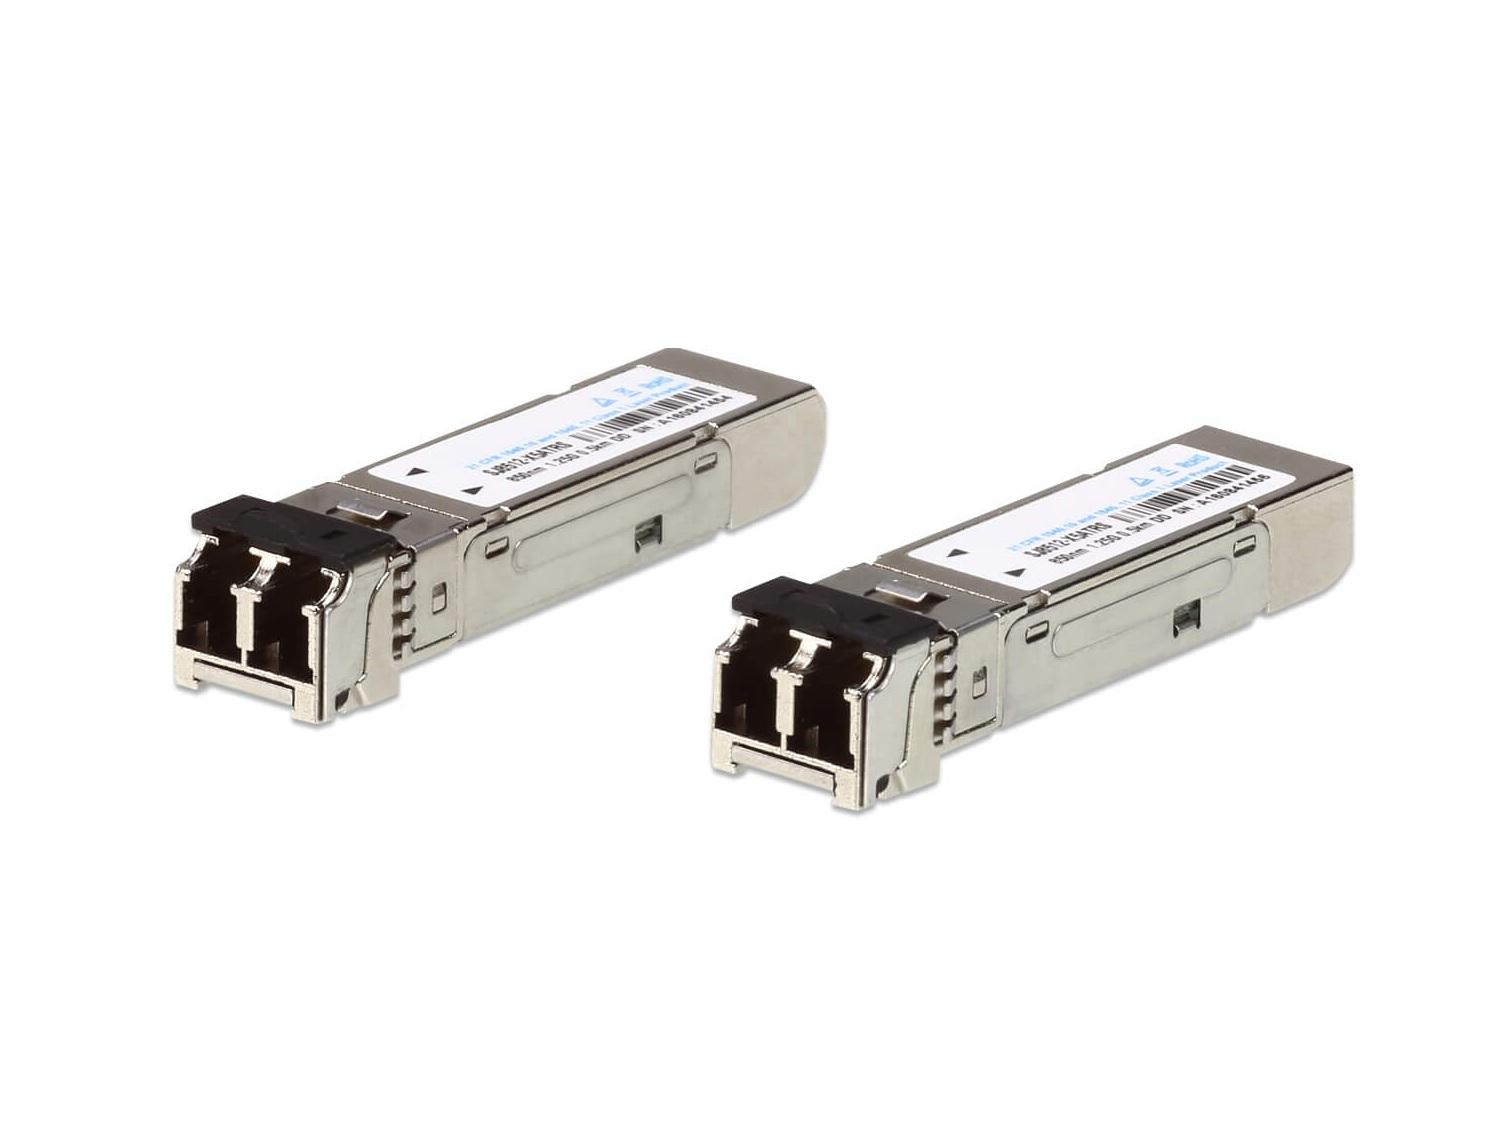 2A-137G Fiber Single-Mode 1.25G SFP Transceiver Module (10KM) (2 pcs per Package) by Aten